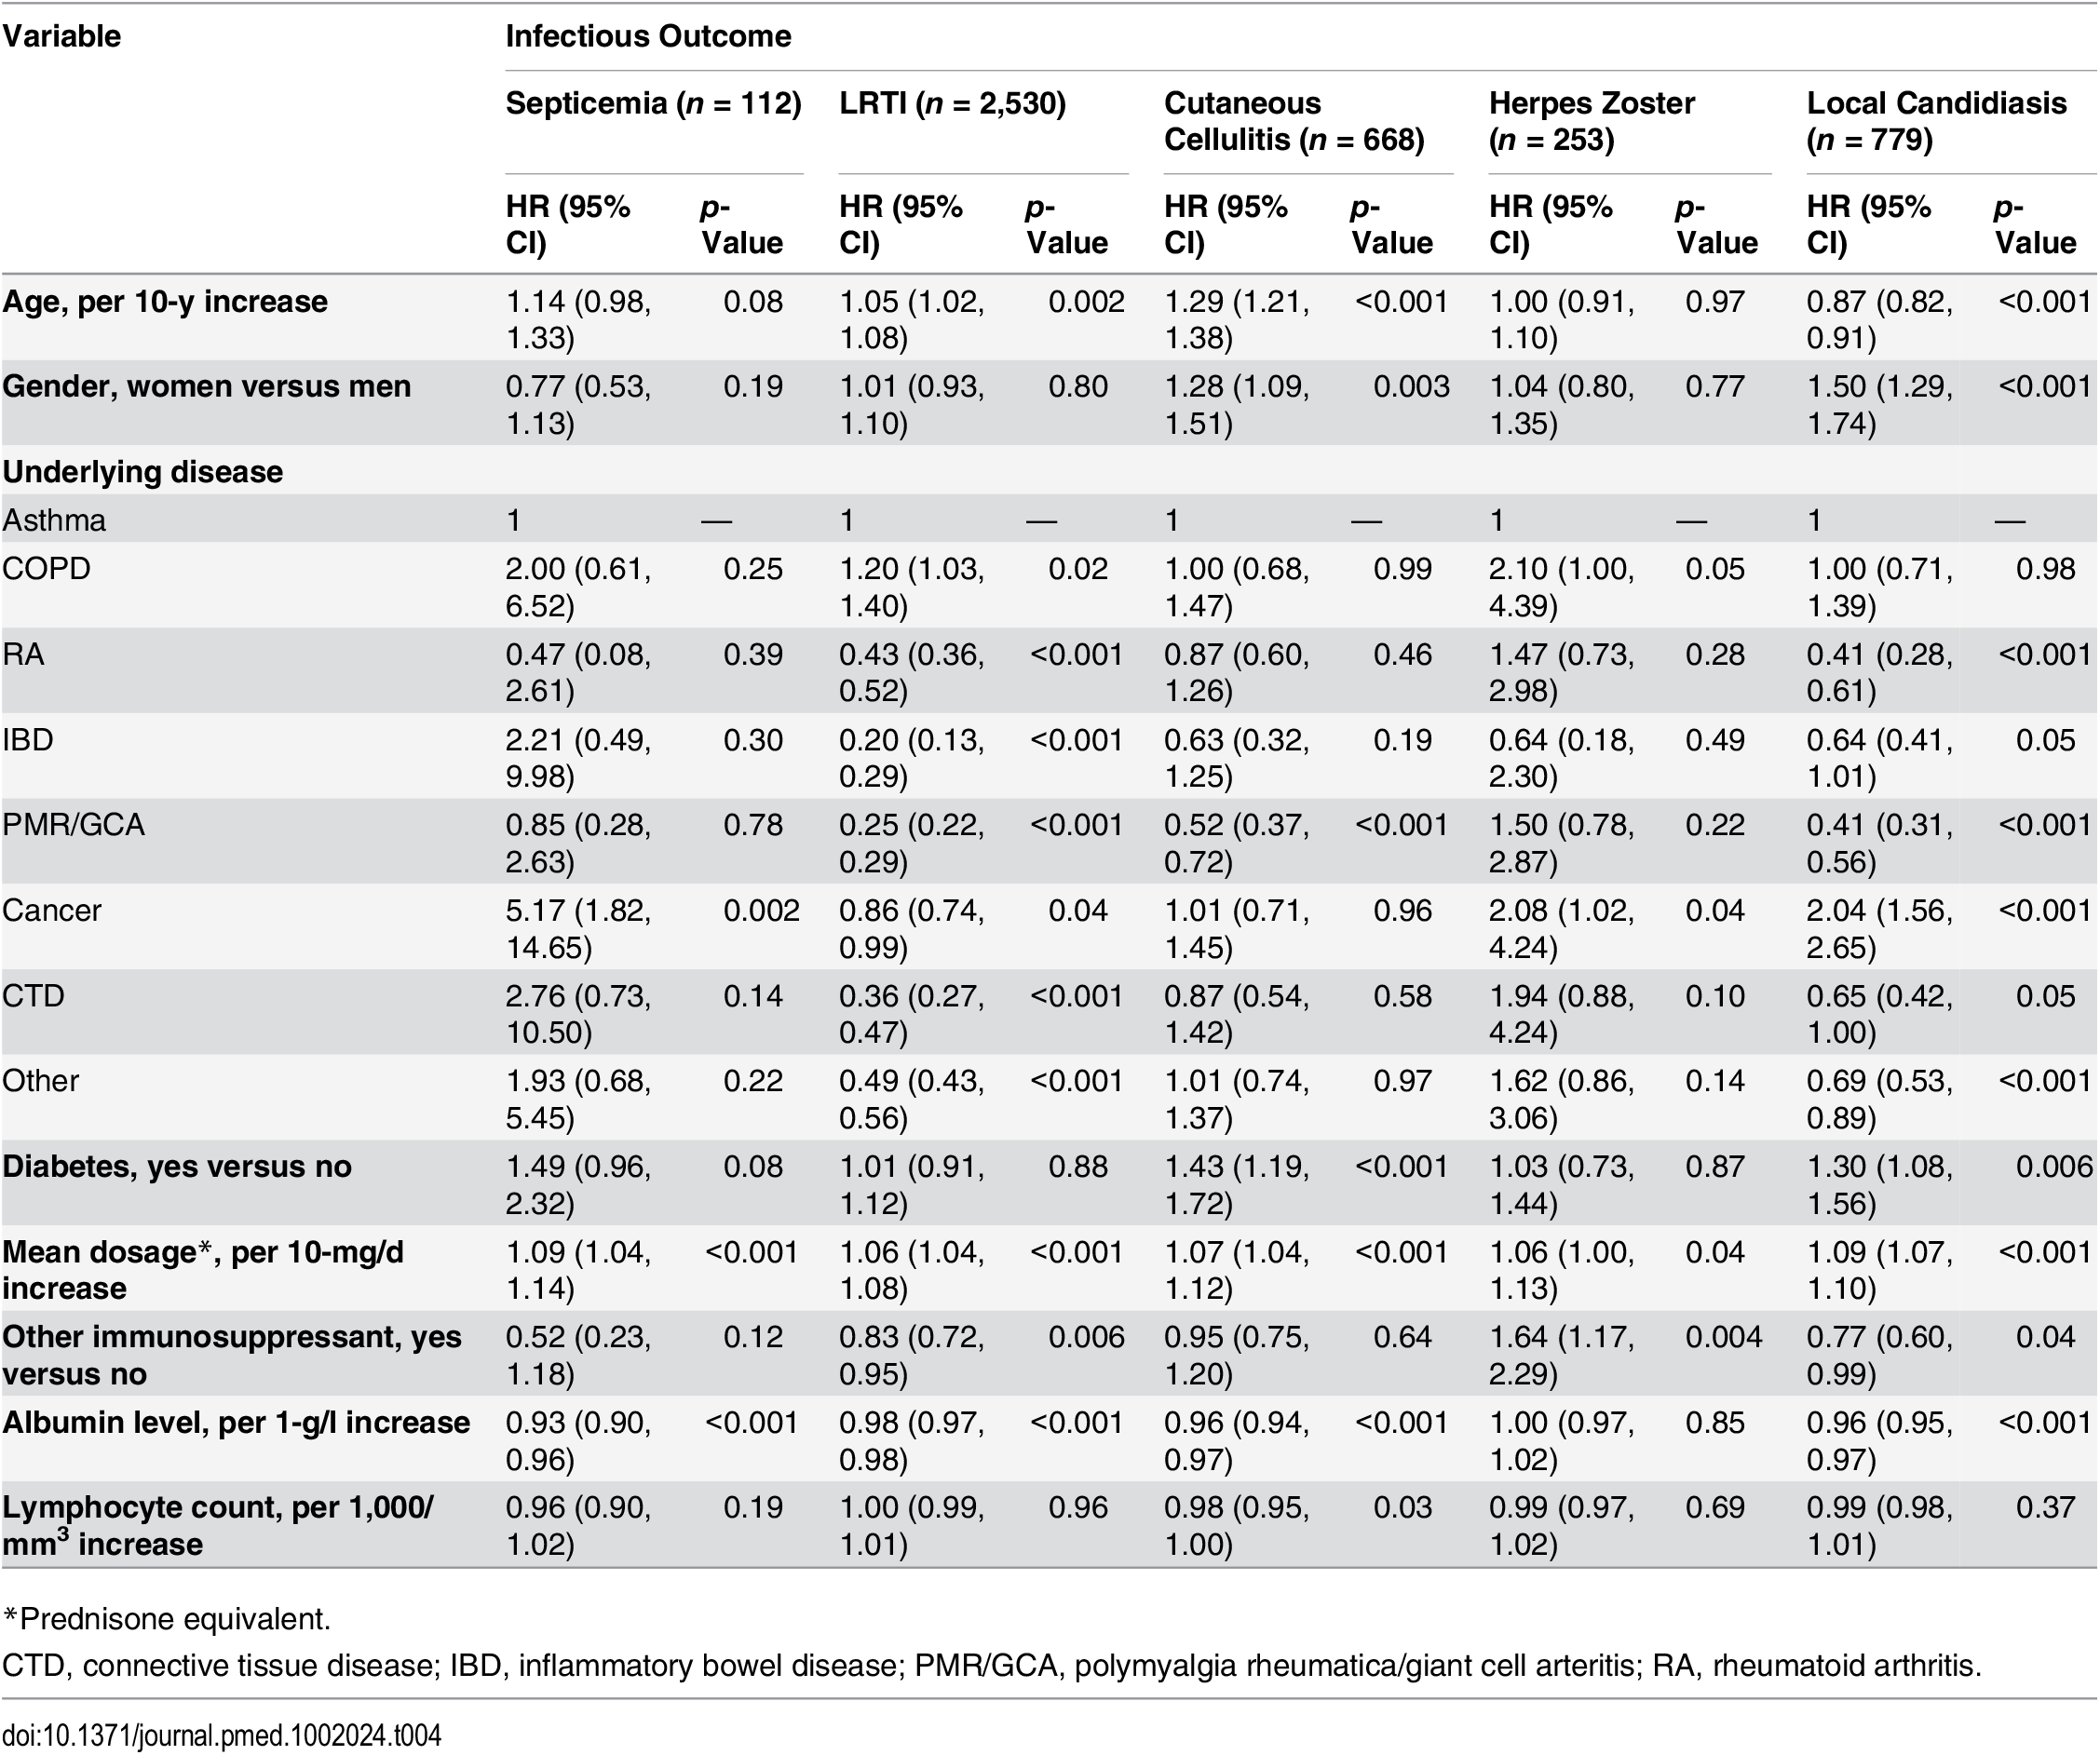 Risk factors for infection in the population exposed to systemic glucocorticoids with data on albumin level and lymphocyte count (<i>n</i> = 34,401).